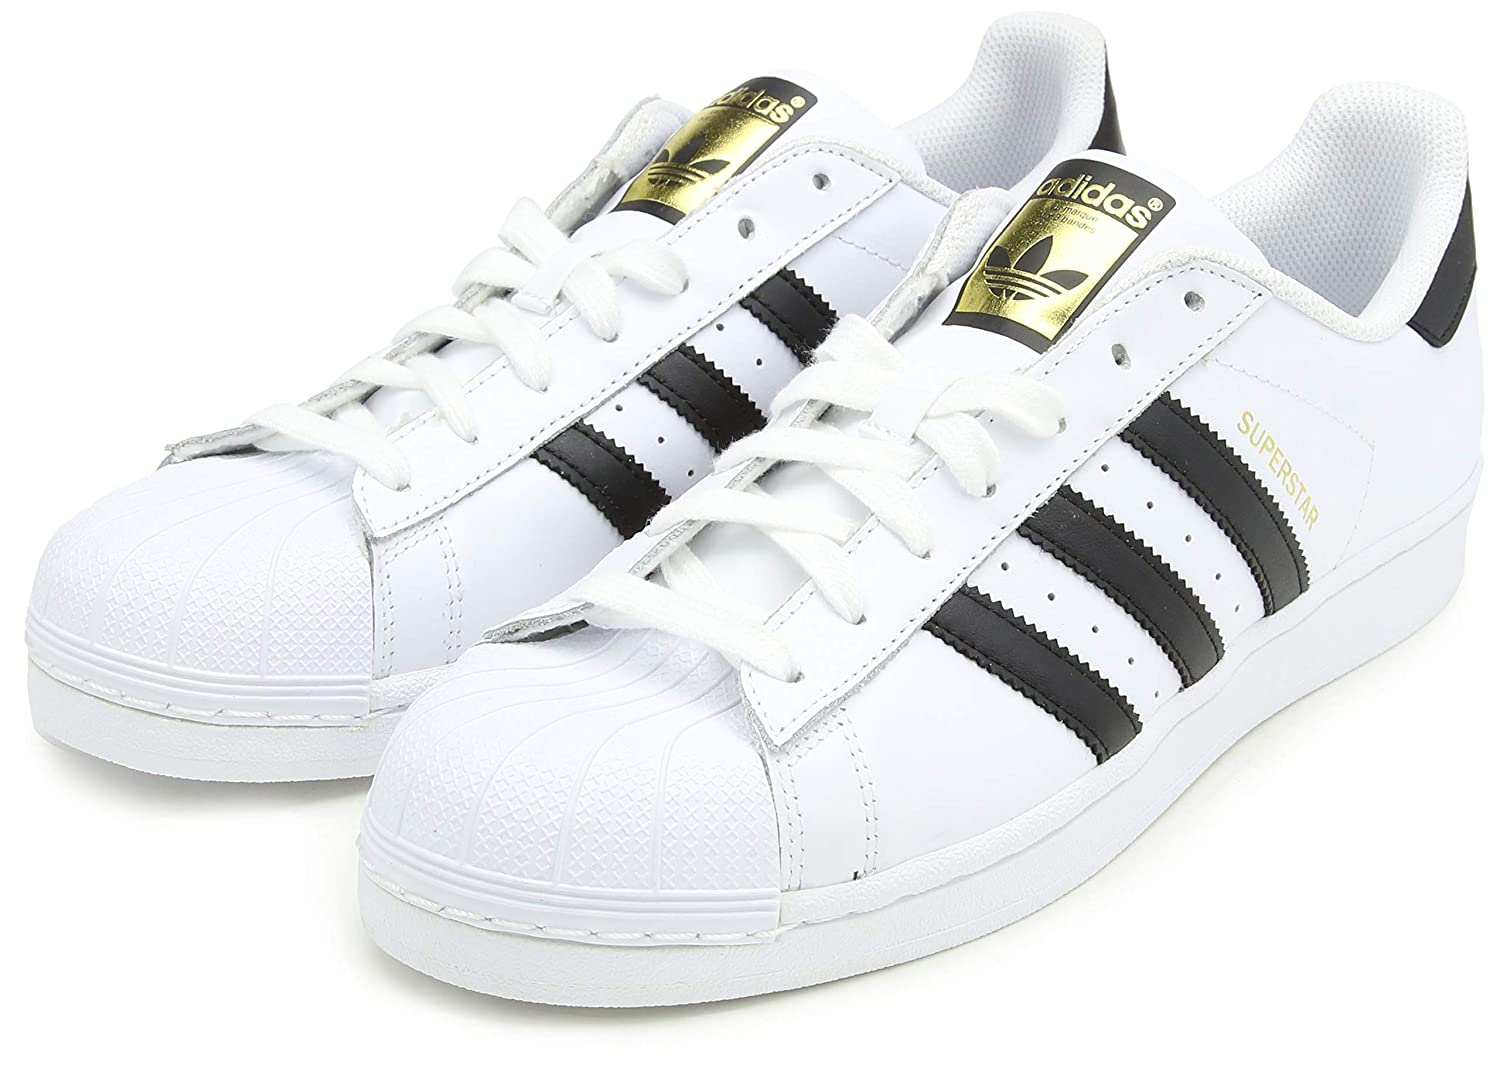 pretty nice 6cca8 c99a1 adidas Originals Women's Superstar Fashion Sneakers